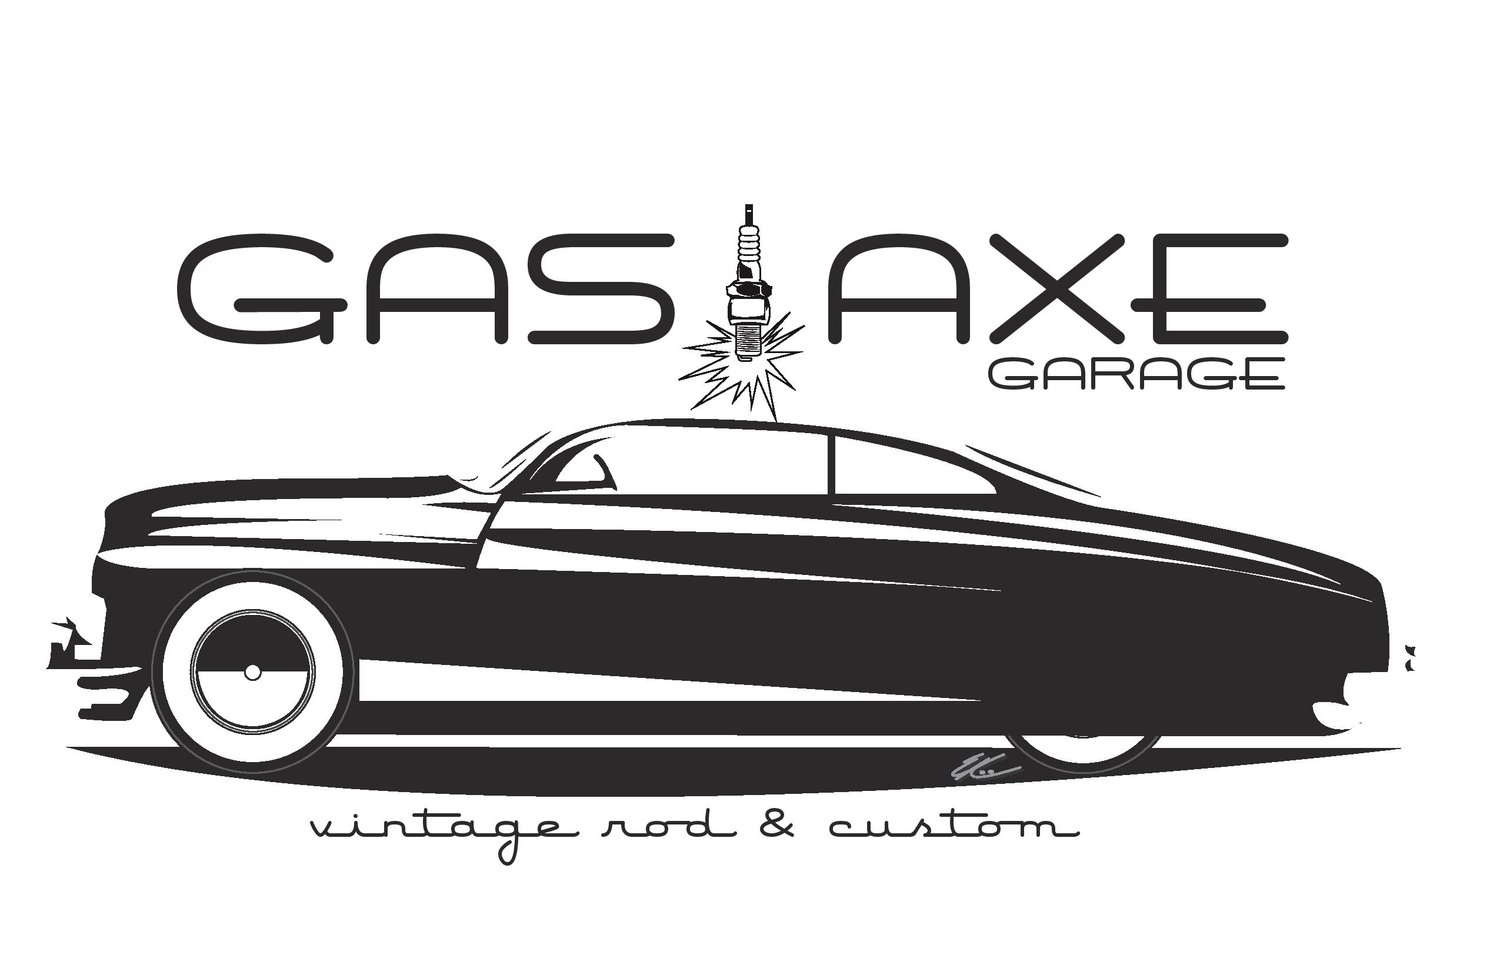 Gas Axe Garage